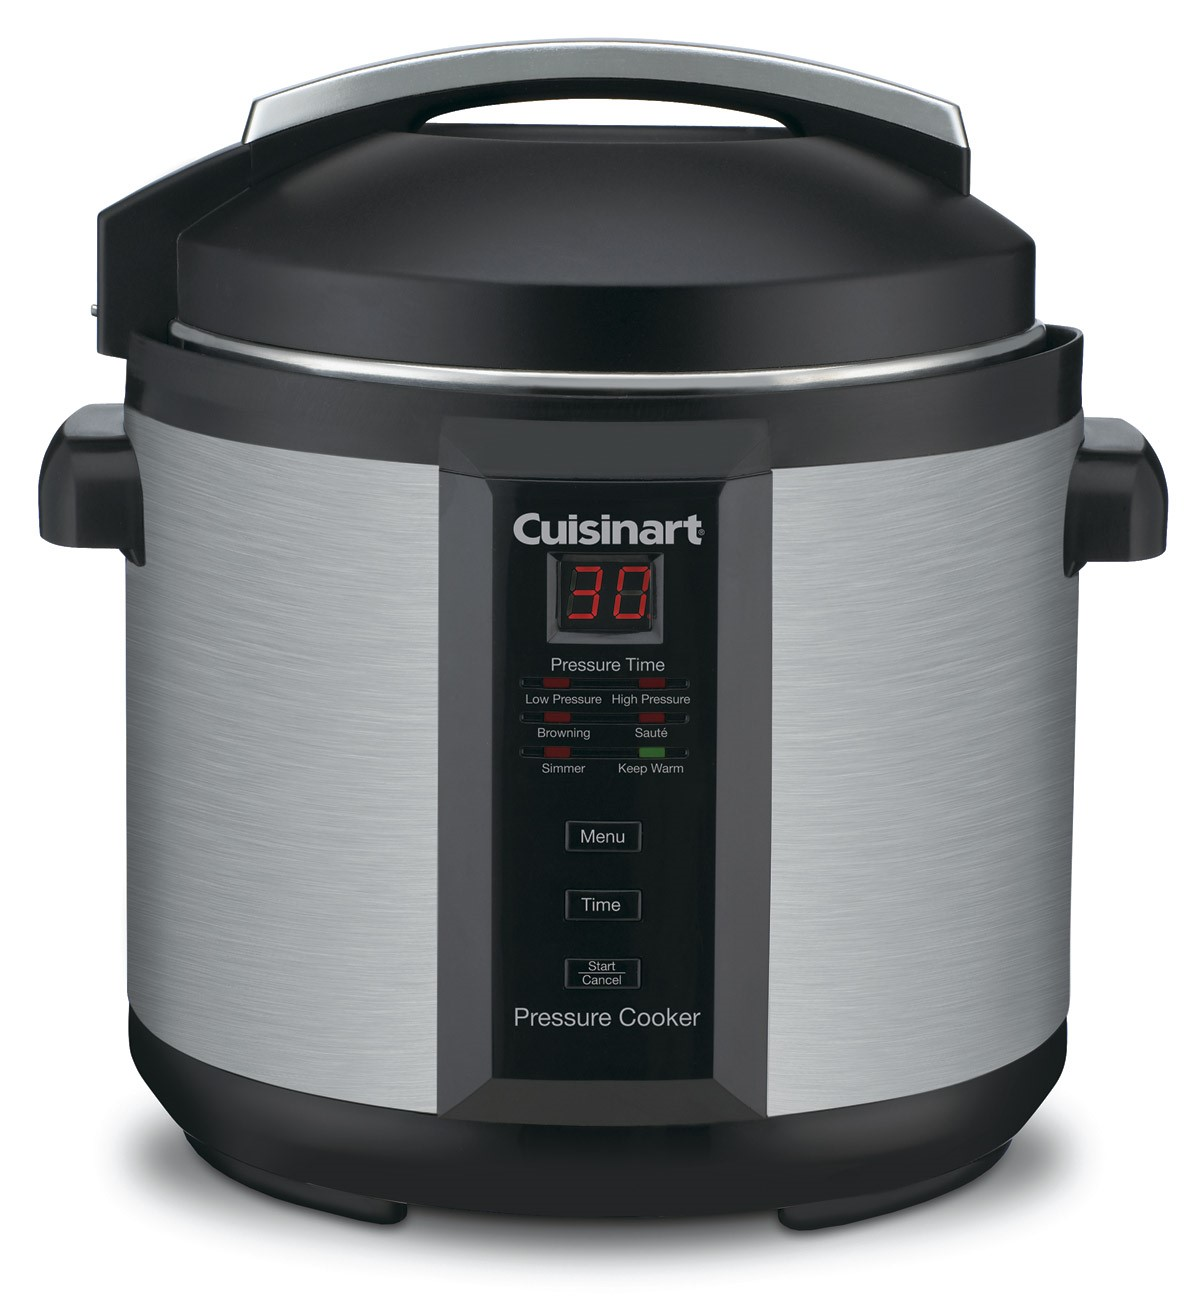 Cuisinart CPC-600 6-Qt. Electric Pressure Cooker One Size